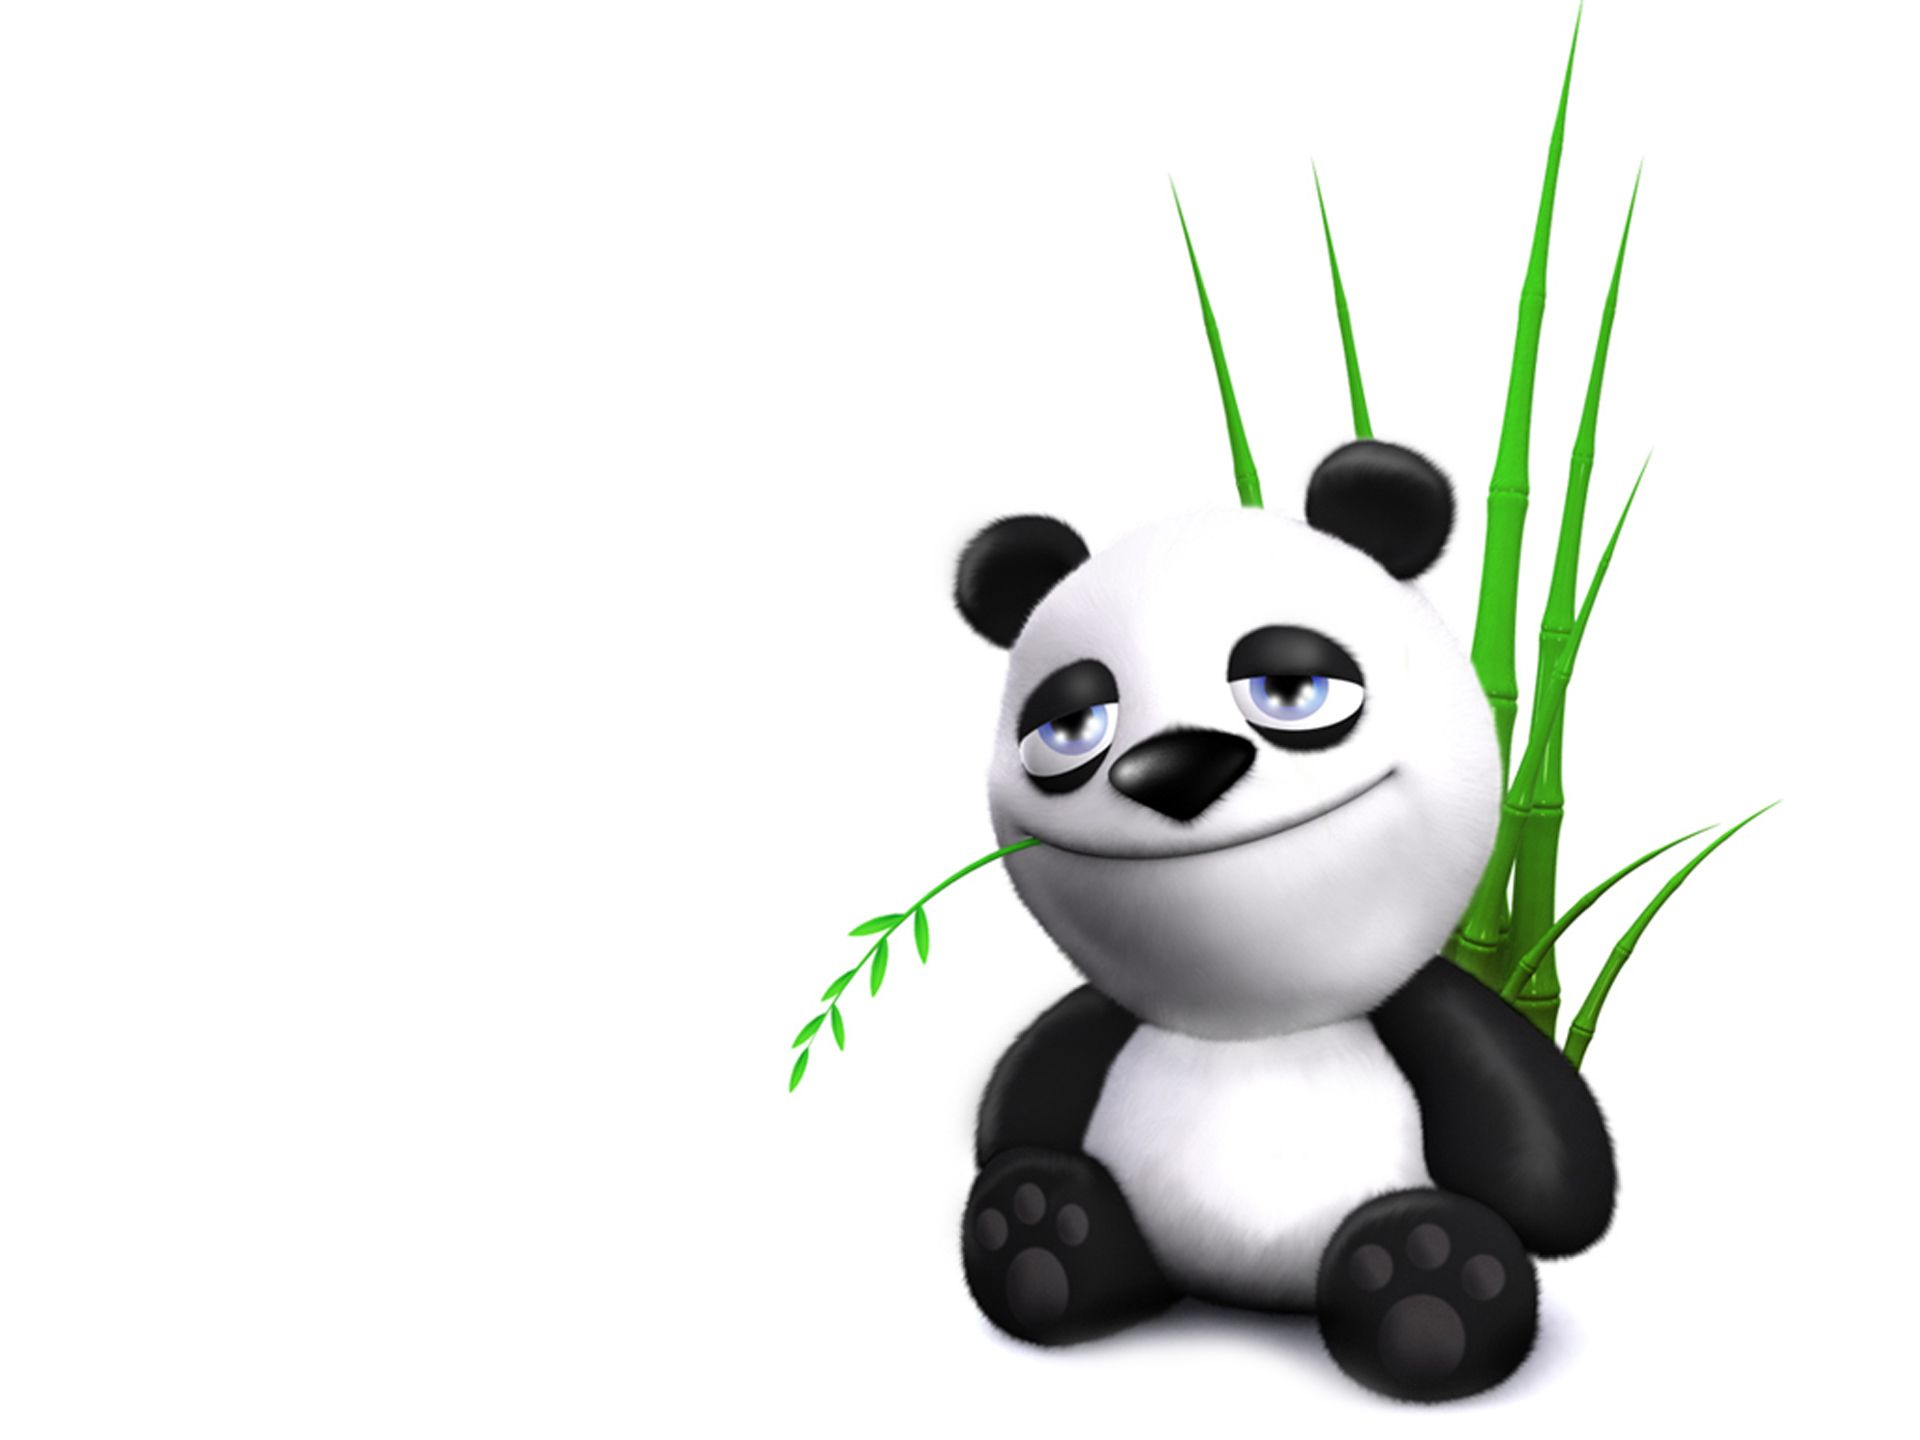 Cute Baby Panda Wallpaper High Quality Love Iphone Pink For 1920x1080 Pictures Wallpapers 43